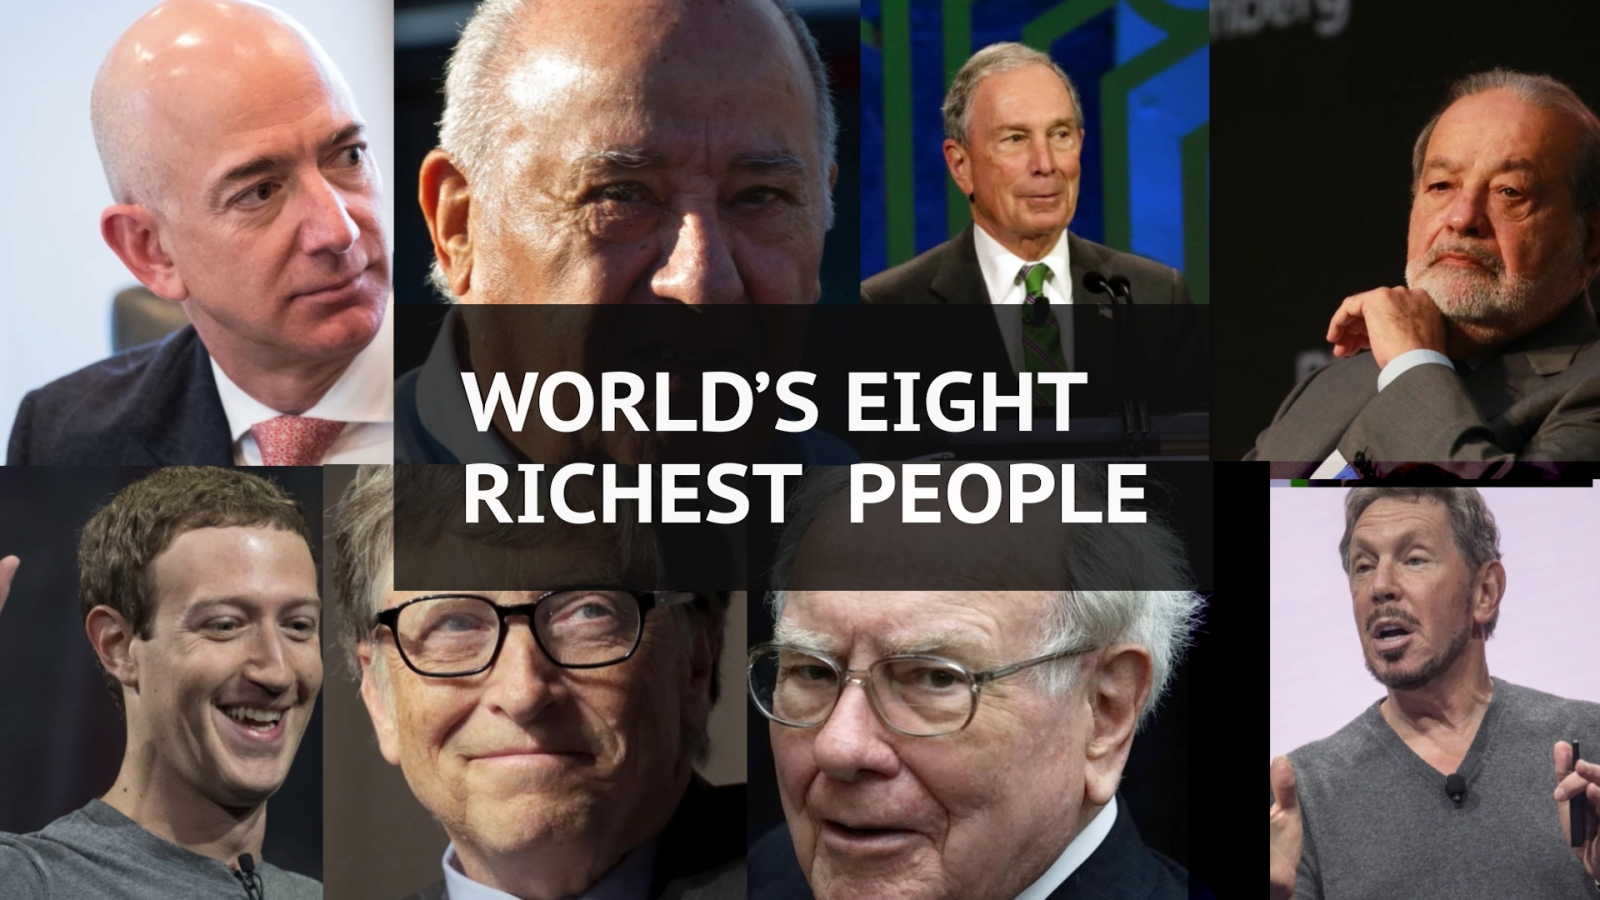 World's eight richest people